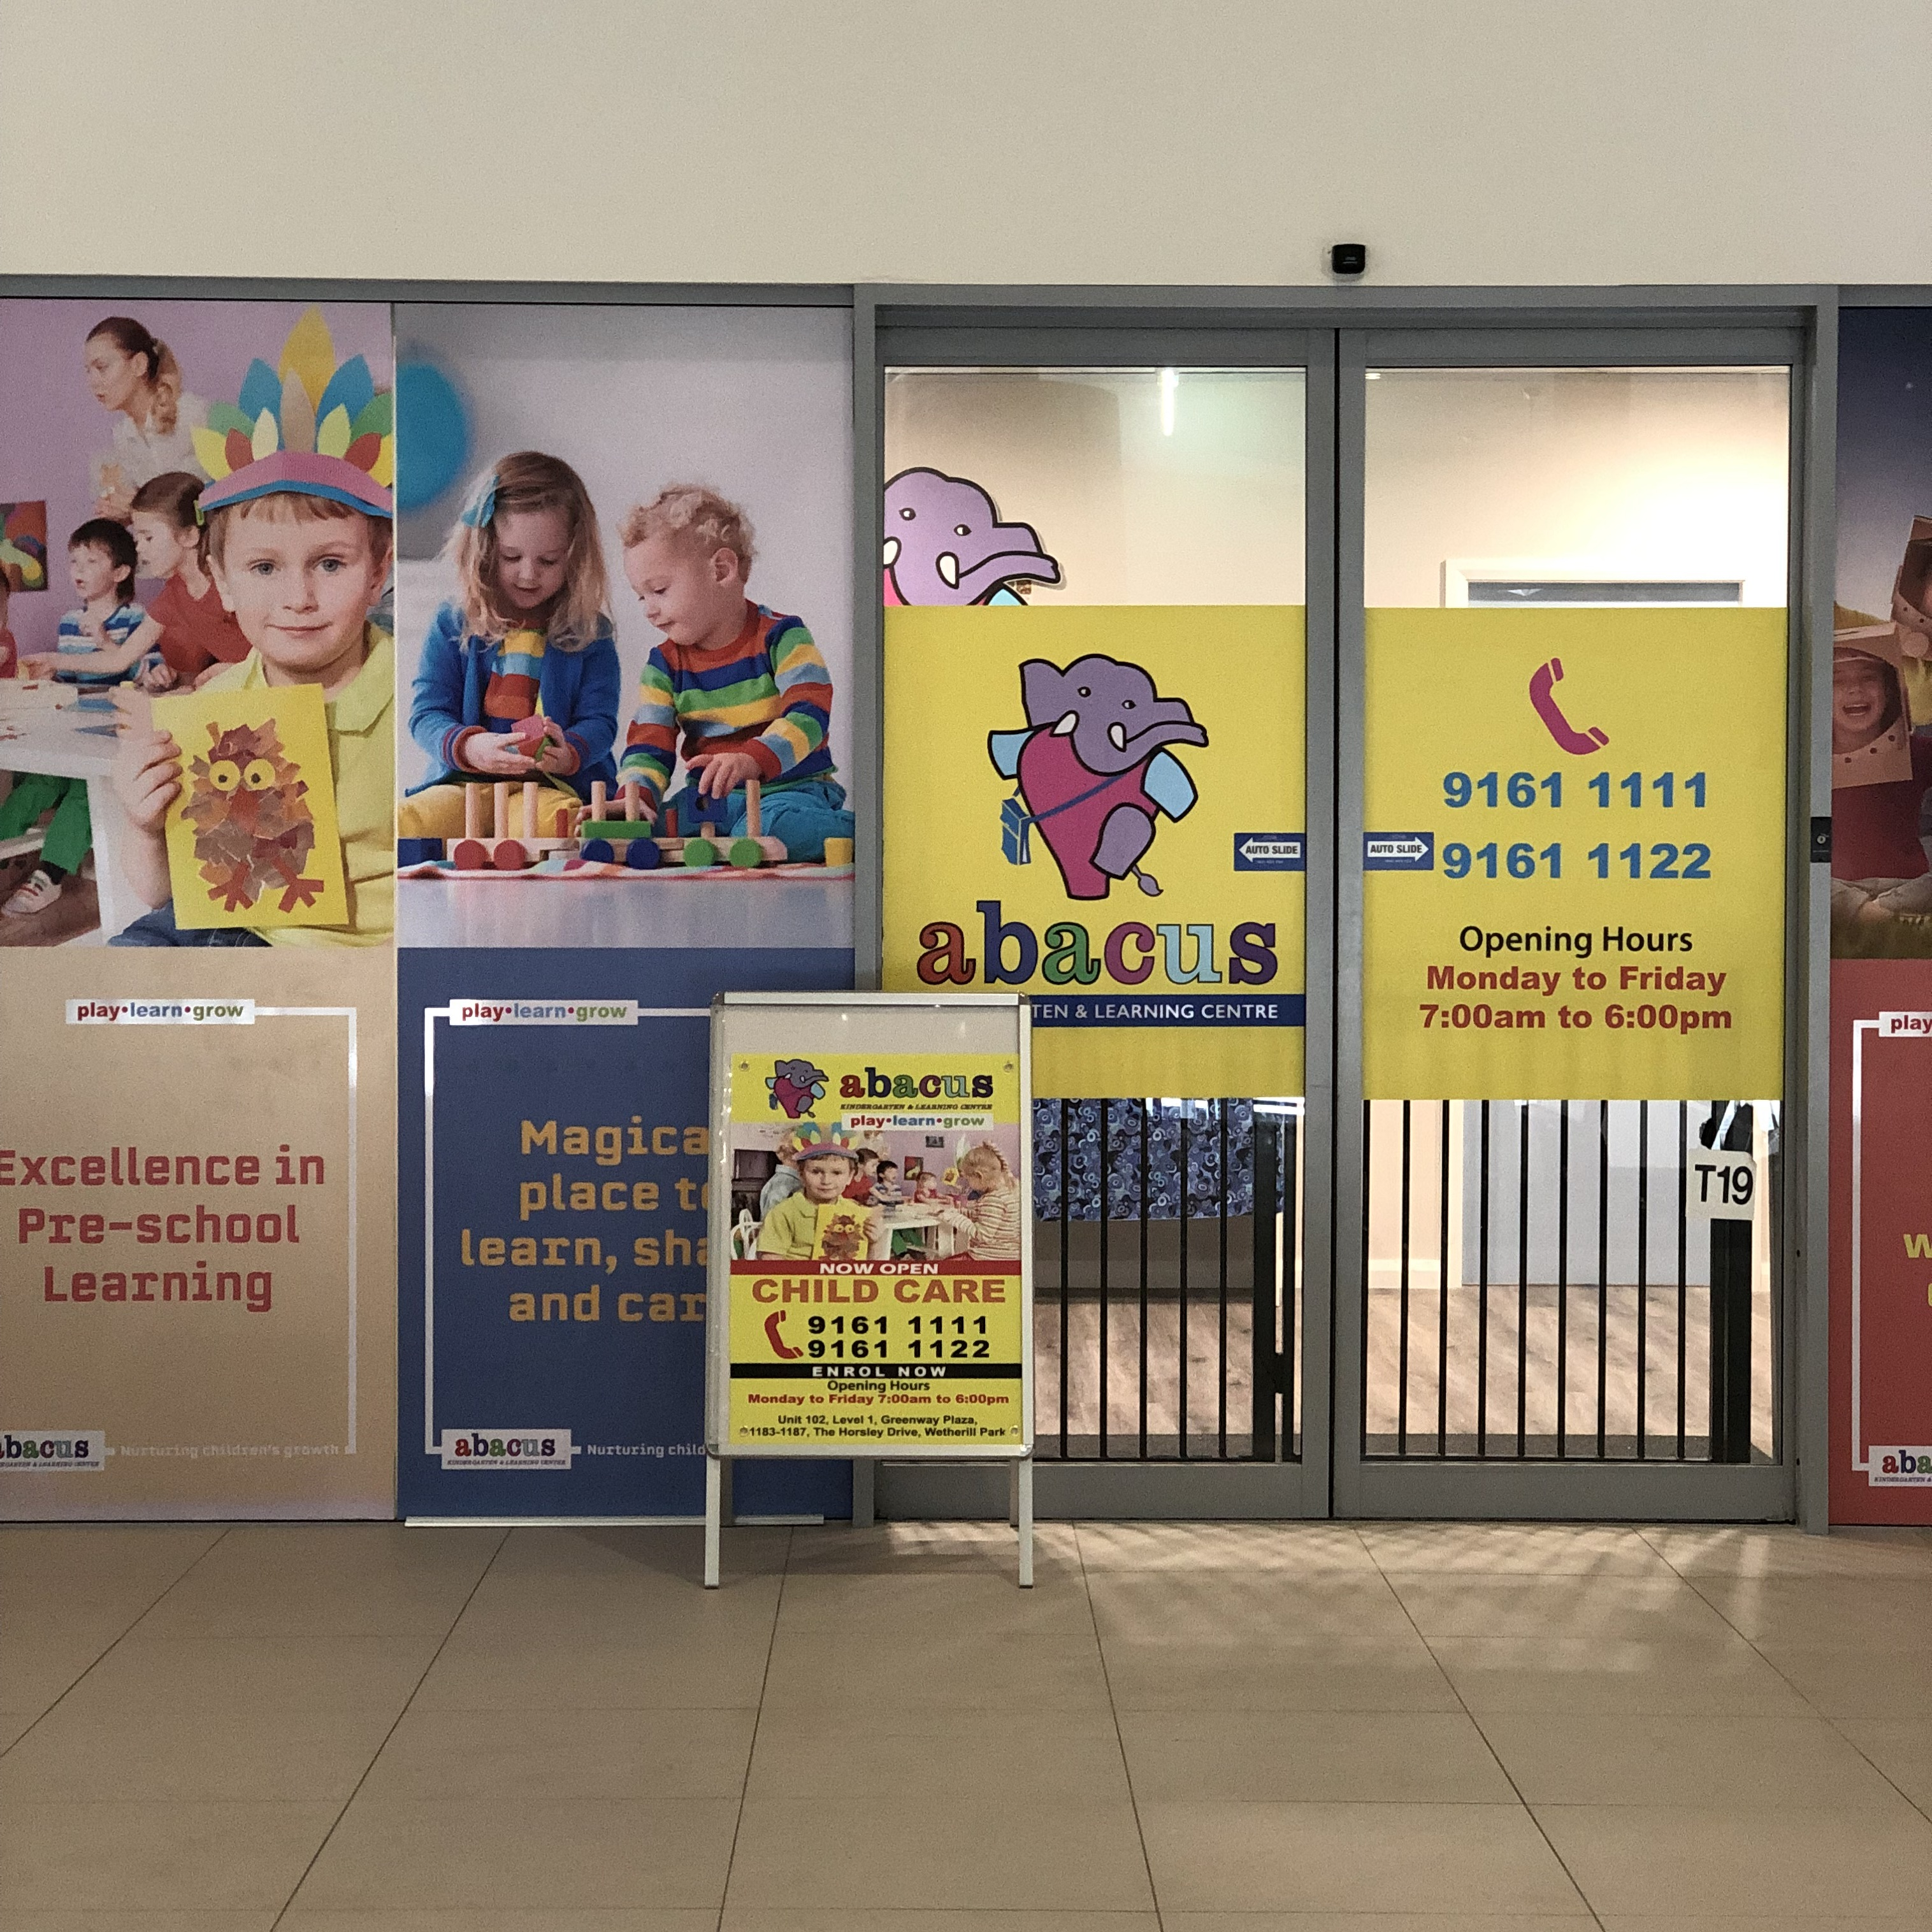 Abacus Kindergarten & Early Learning Centre store